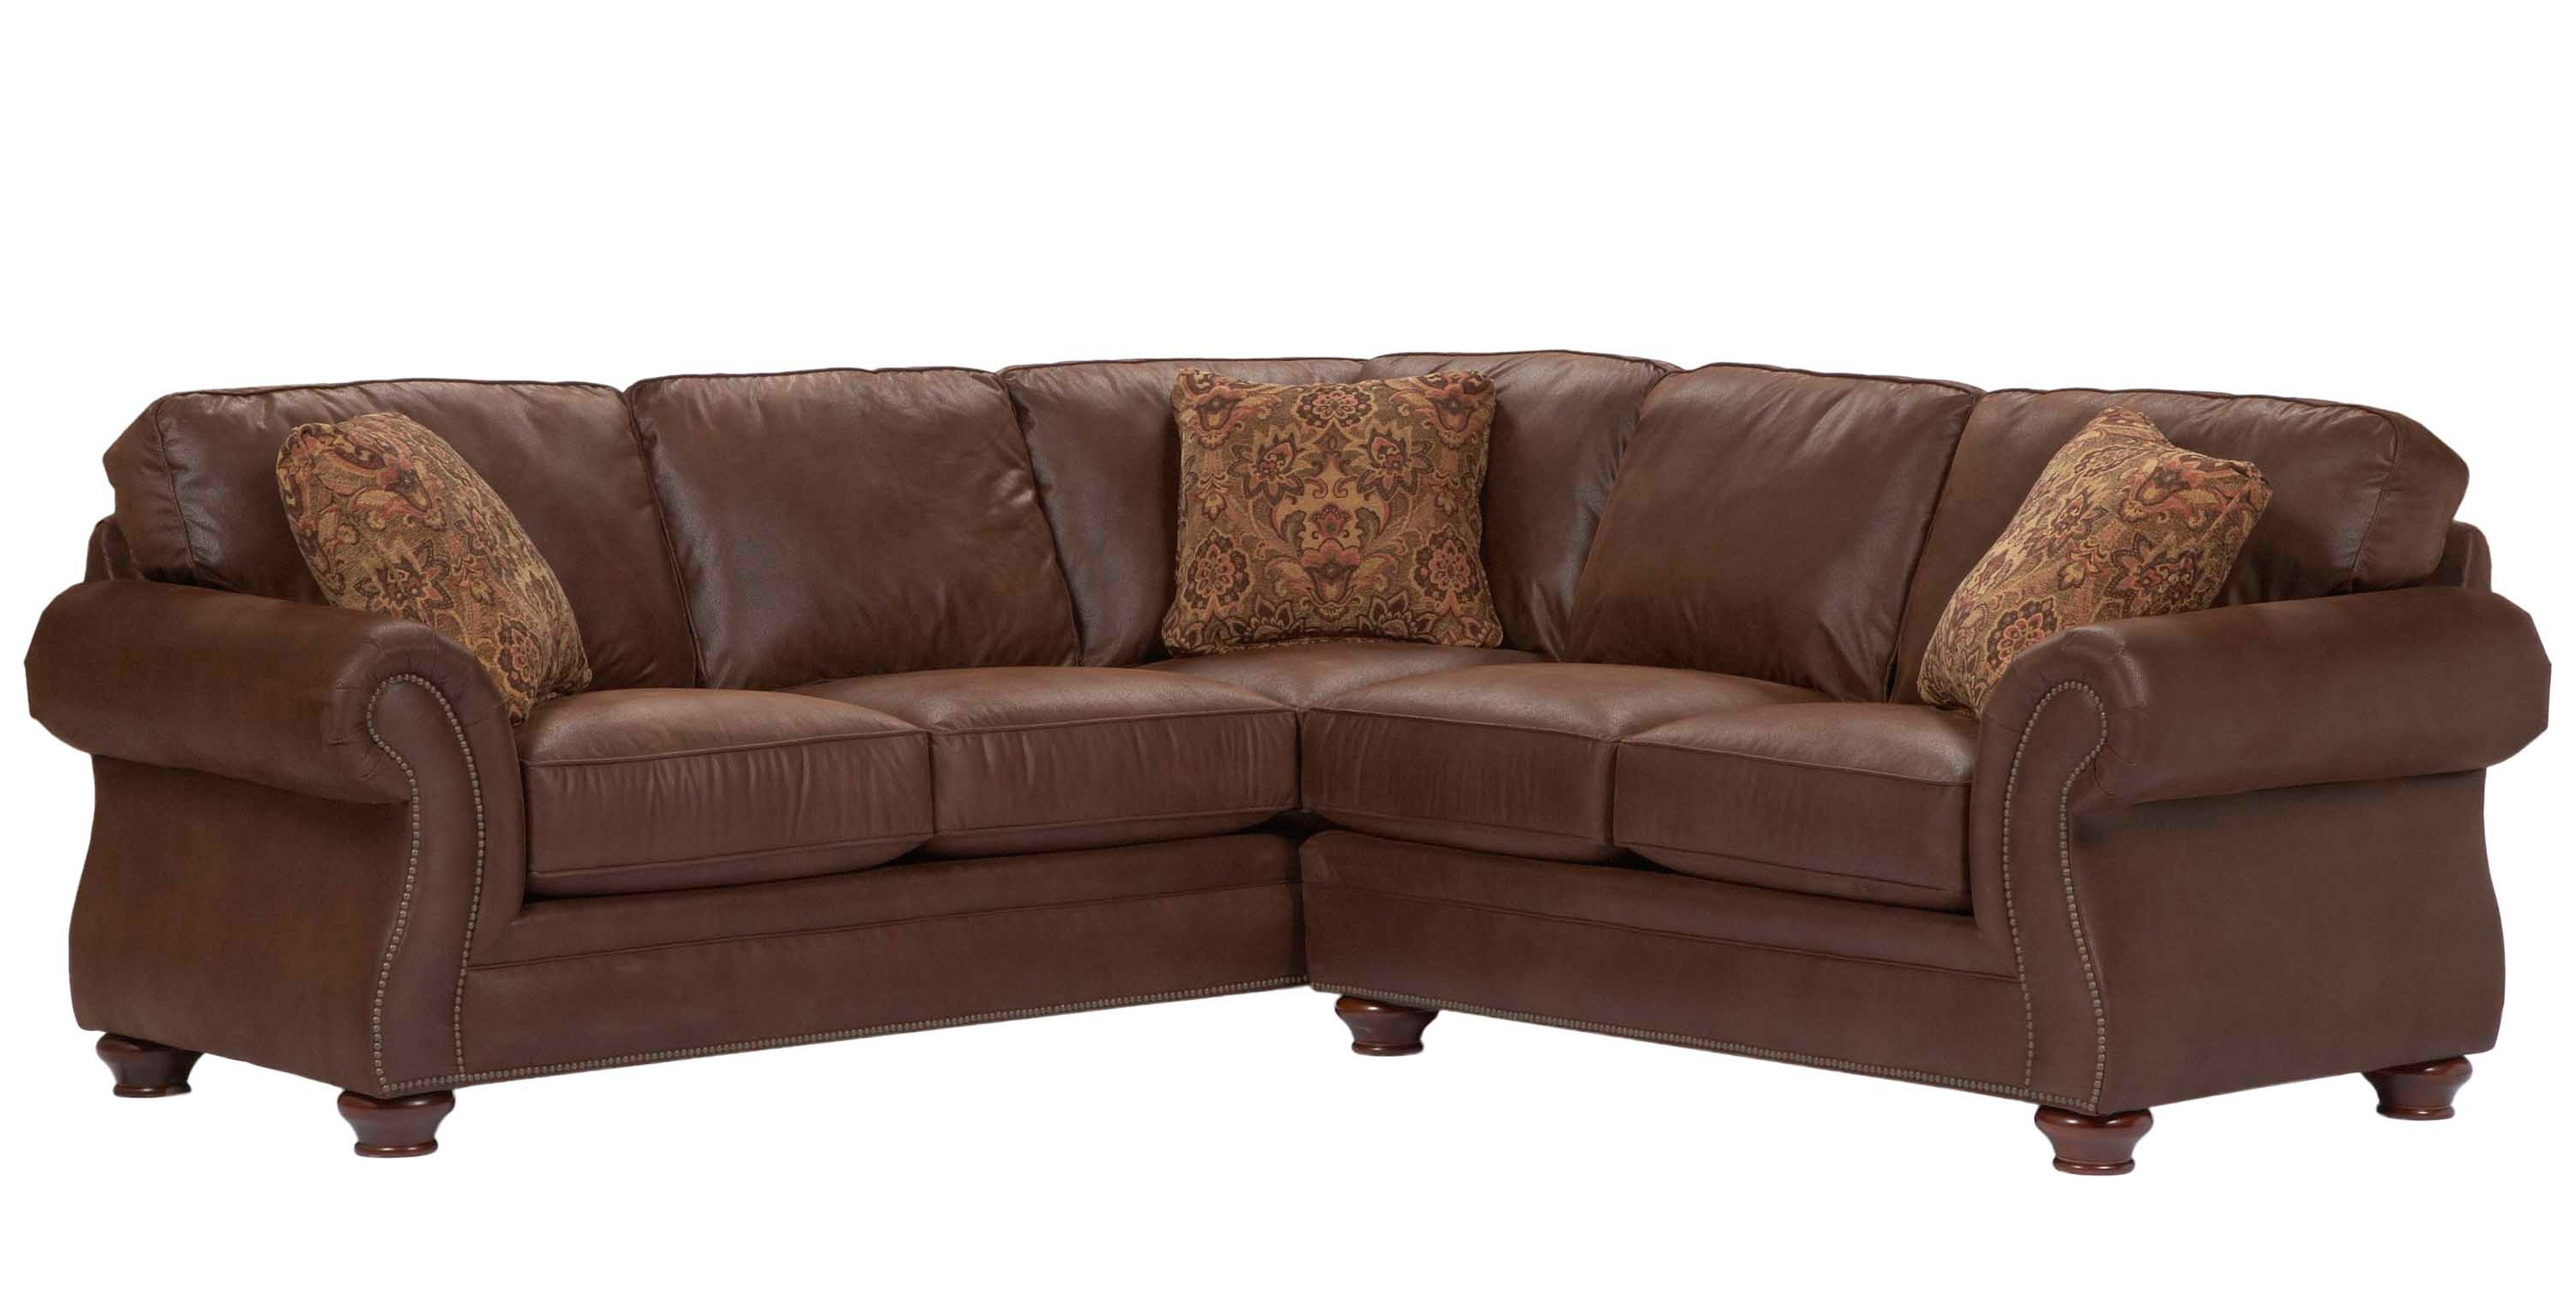 Broyhill Laramie Sectional 5080-1Q/5080-4Q for Sectional Sofas at Broyhill (Image 6 of 15)